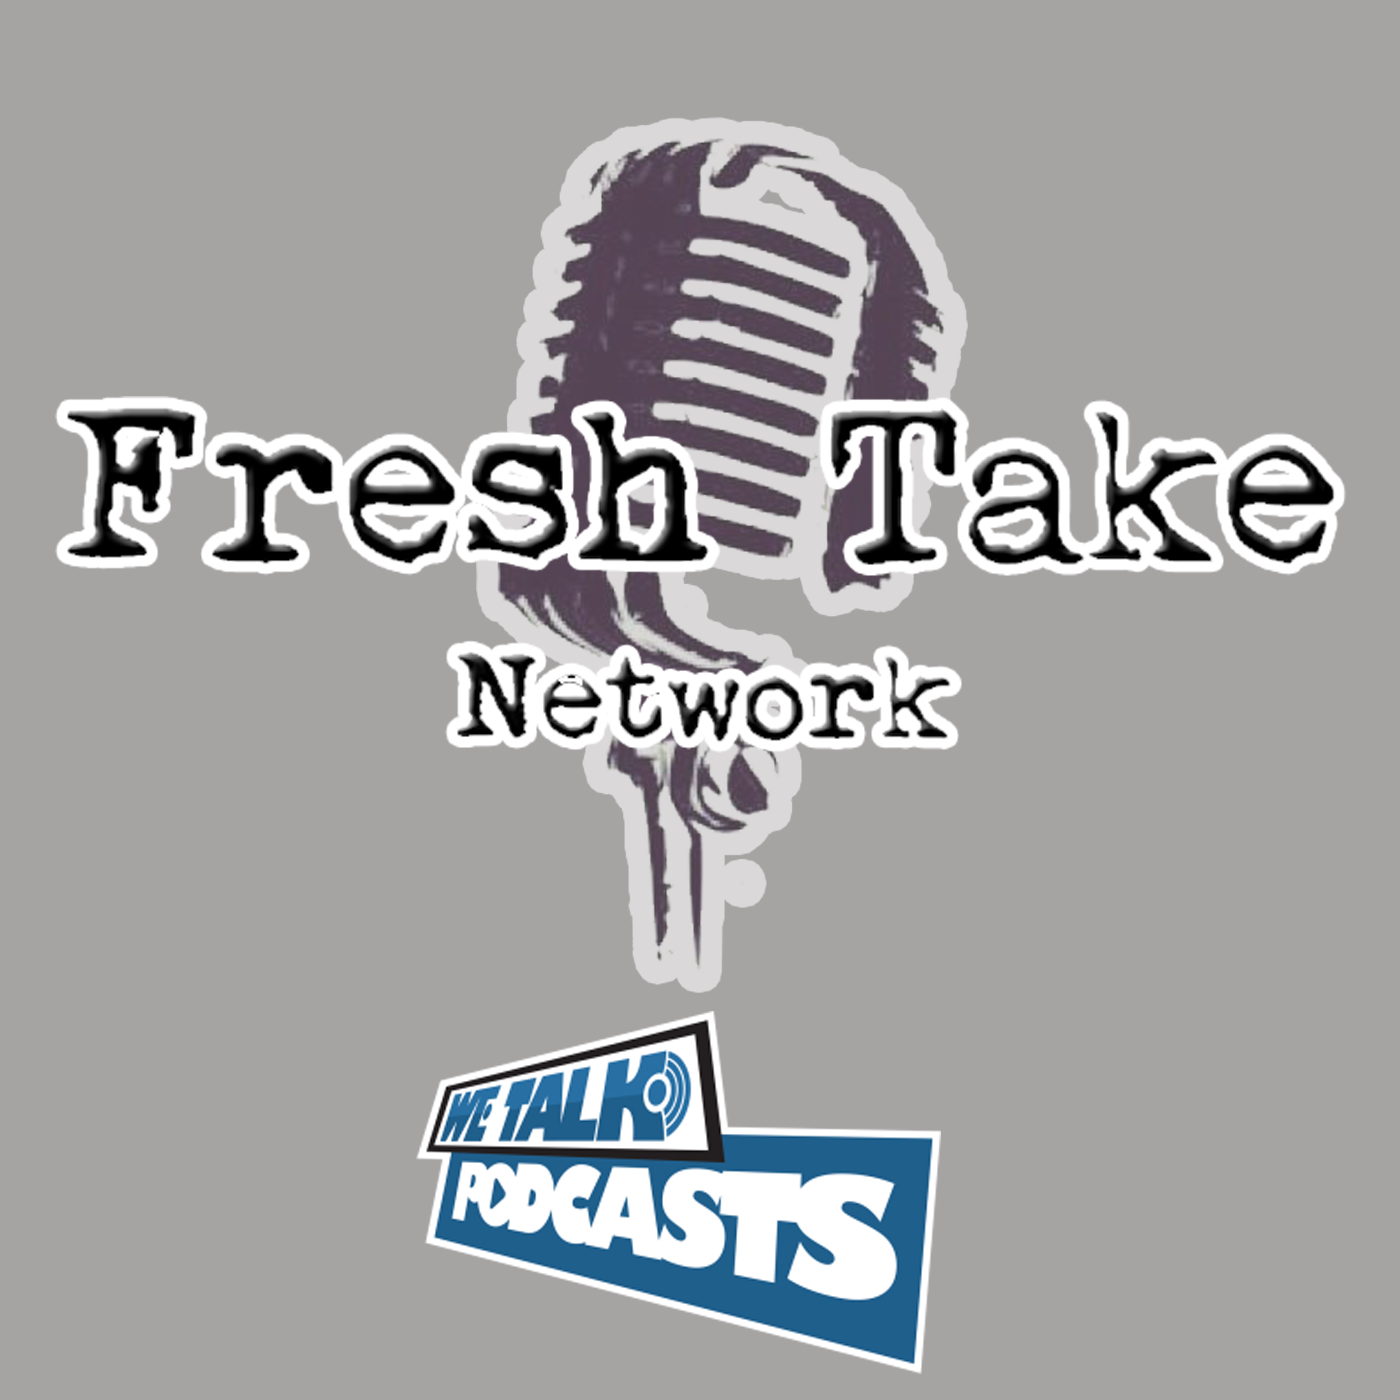 Fresh Take Network – We Talk Podcasts